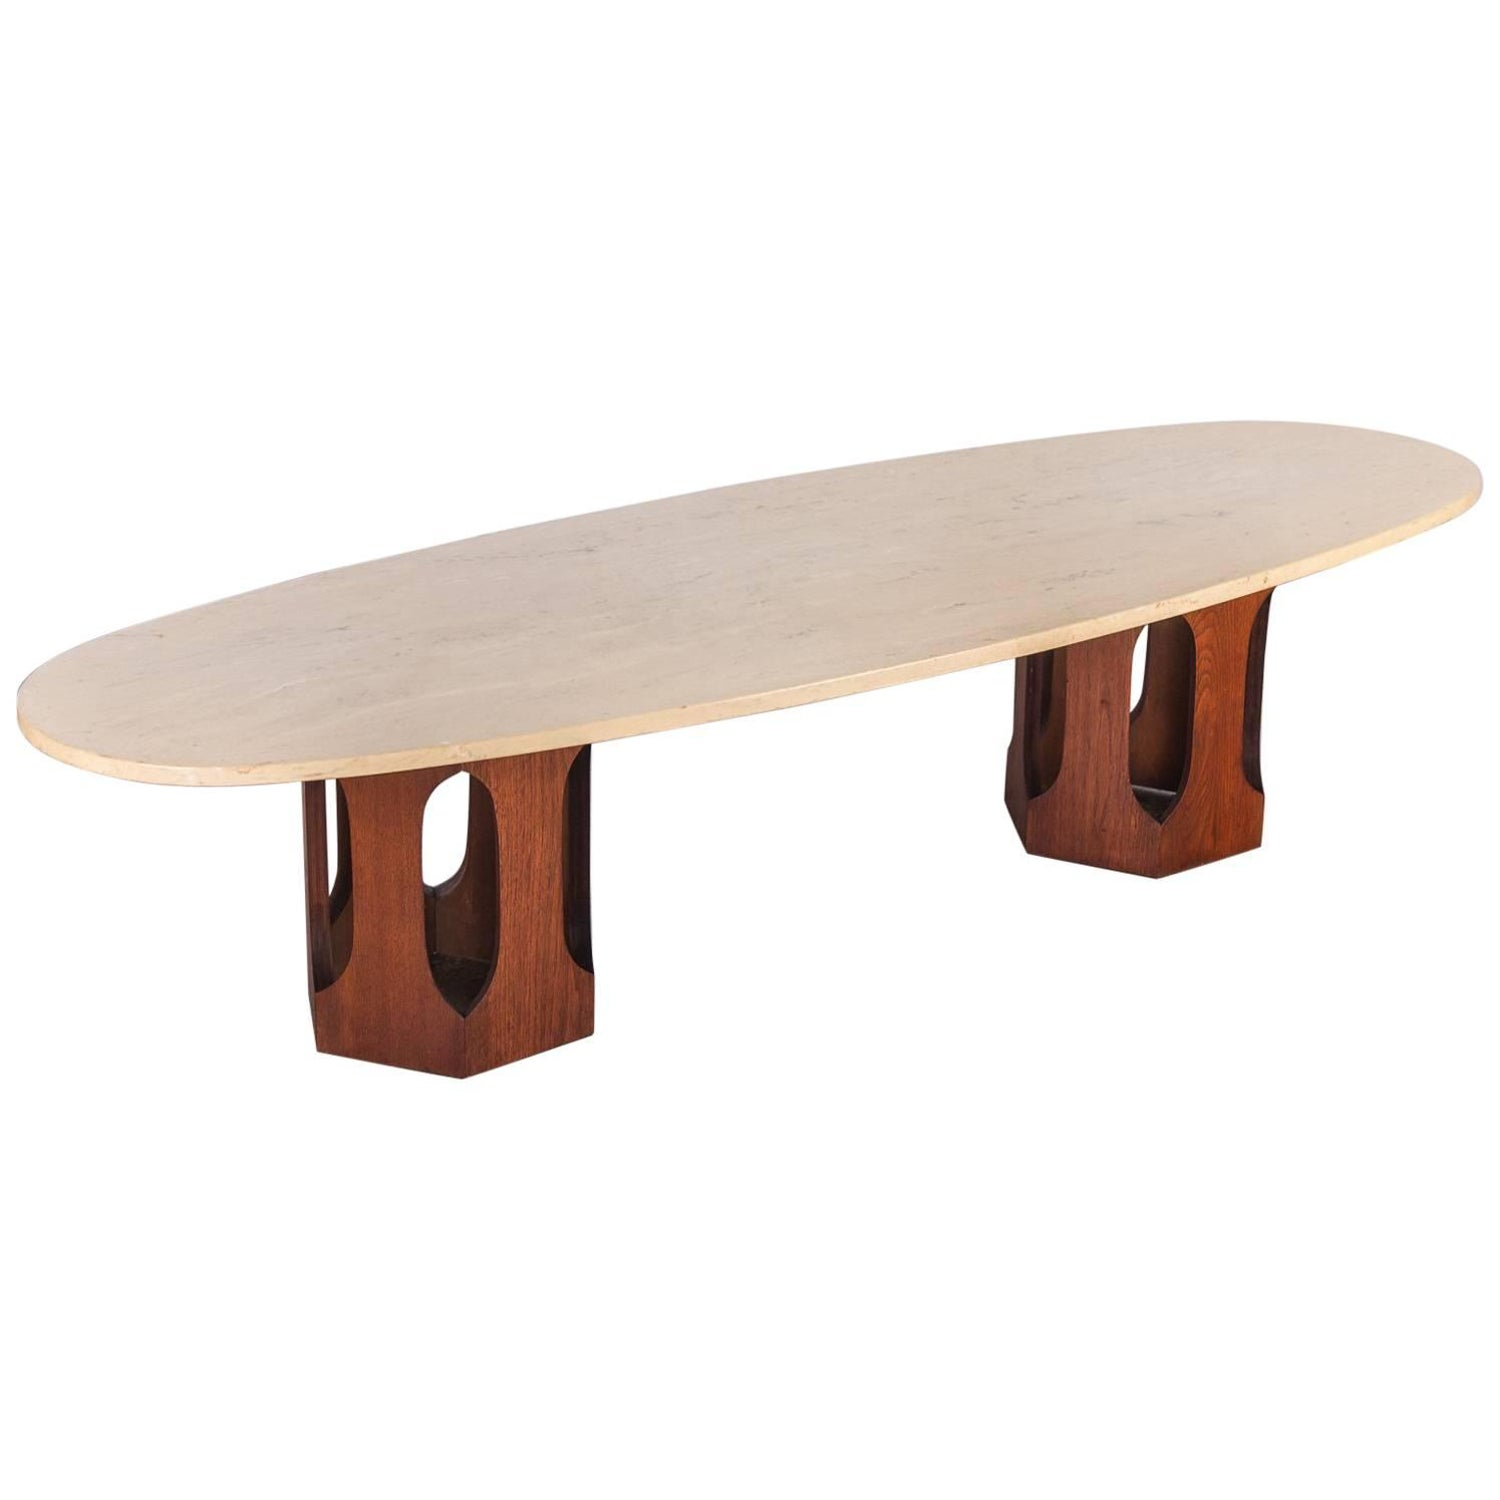 Harvey Probber Travertine Coffee Table For Sale at 1stdibs